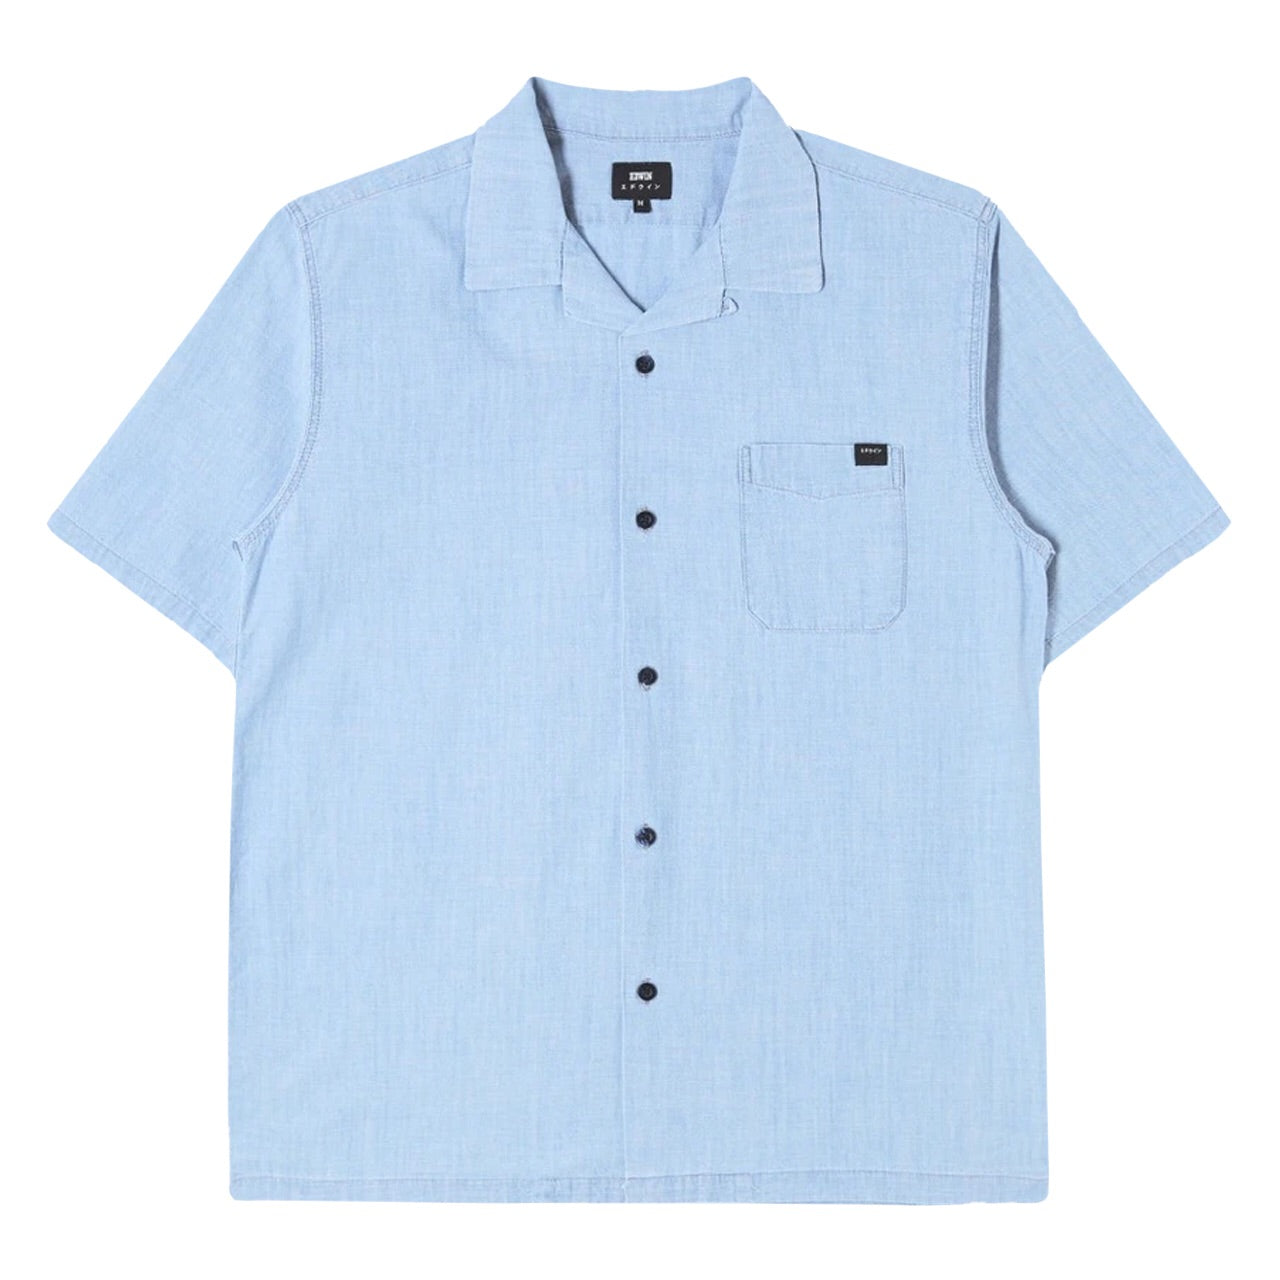 Edwin Resort Shirt SS Blue - Light Stone Washed